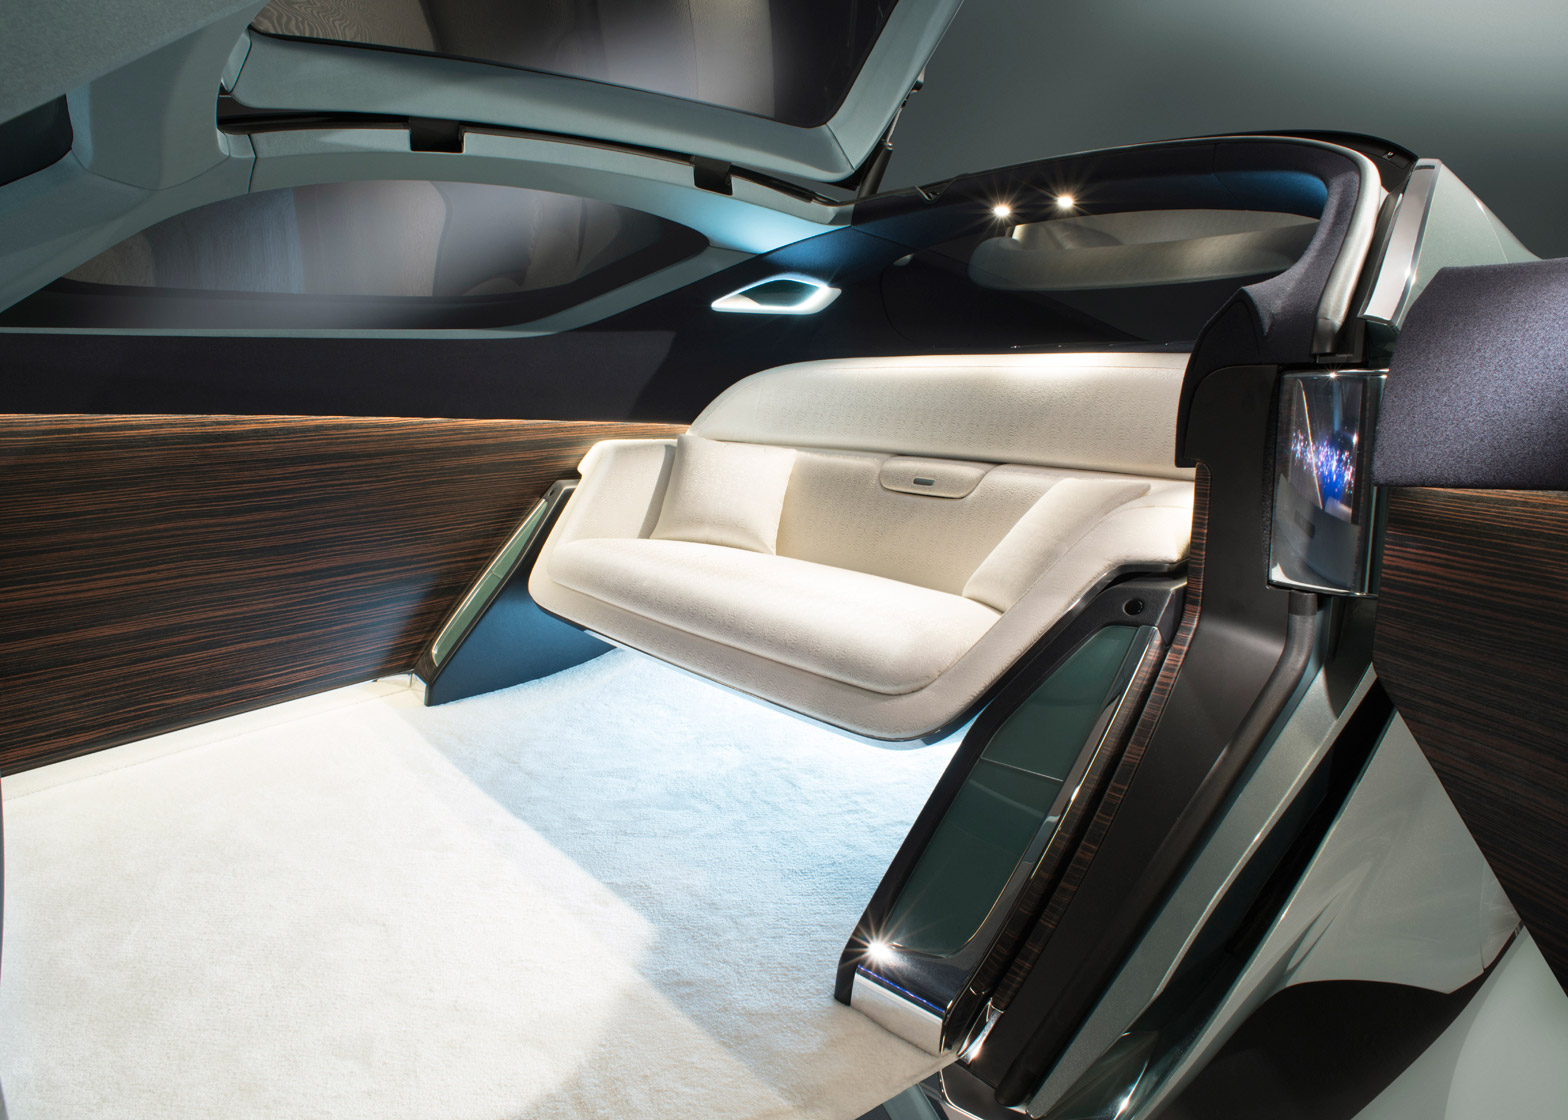 Rolls Royce Unveil Concept Design For Driverless Vip Transport